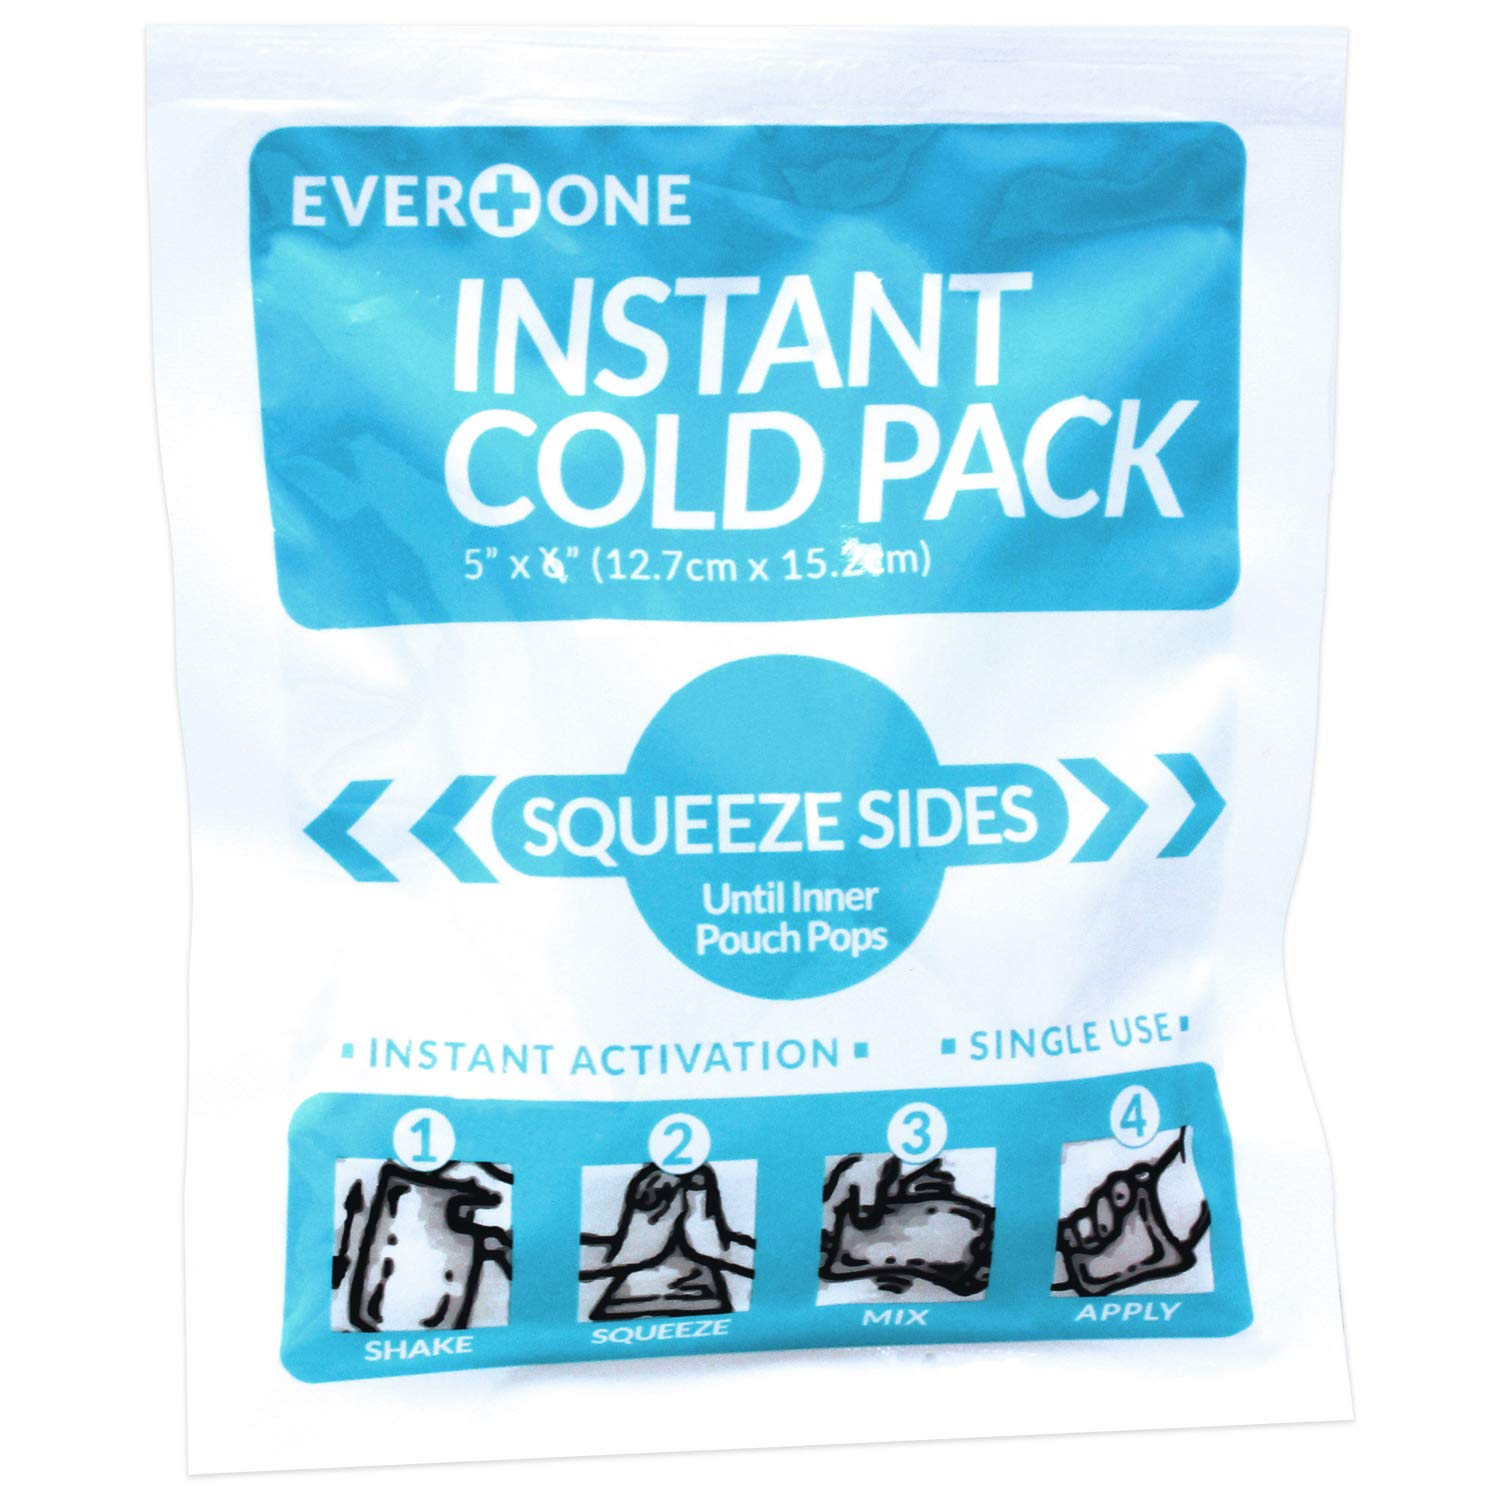 Amazon.com: Everone Instant Cold Pack 5